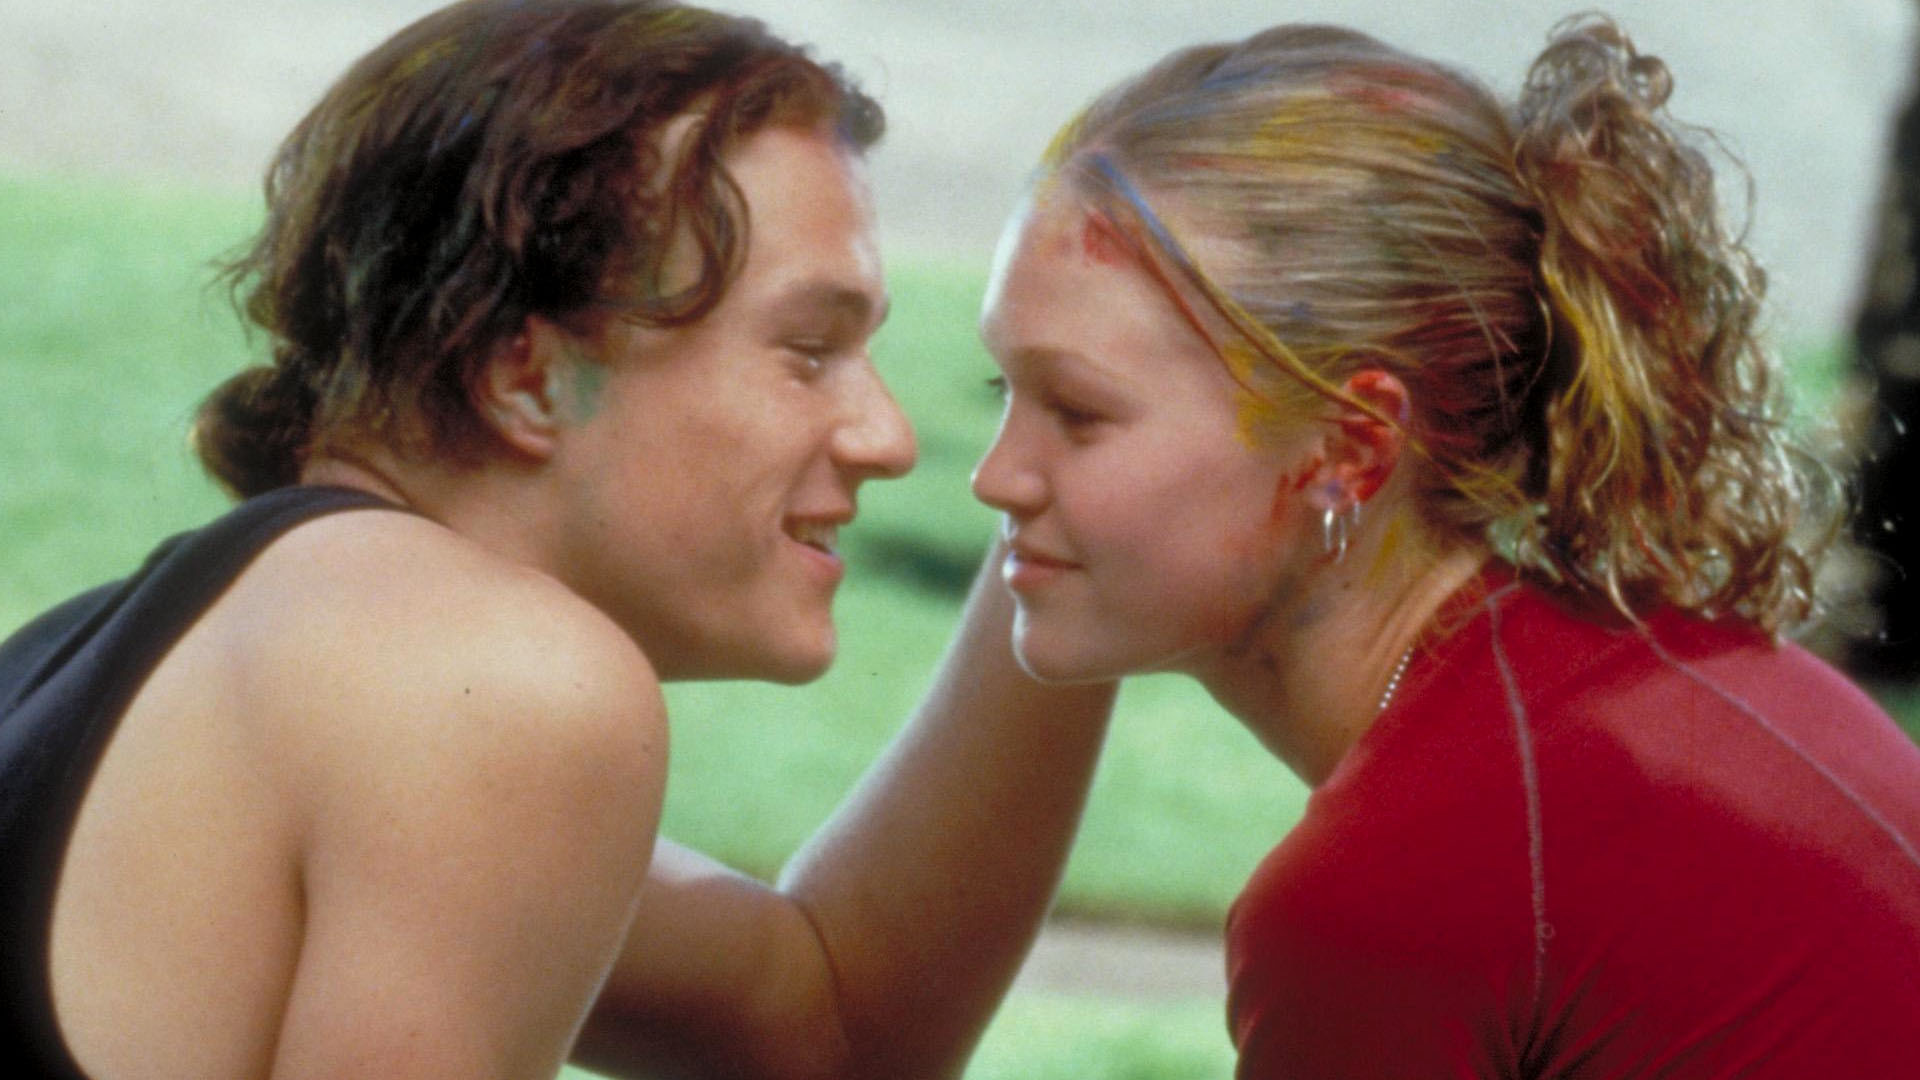 10 things I hate about you, movies, movies/tv